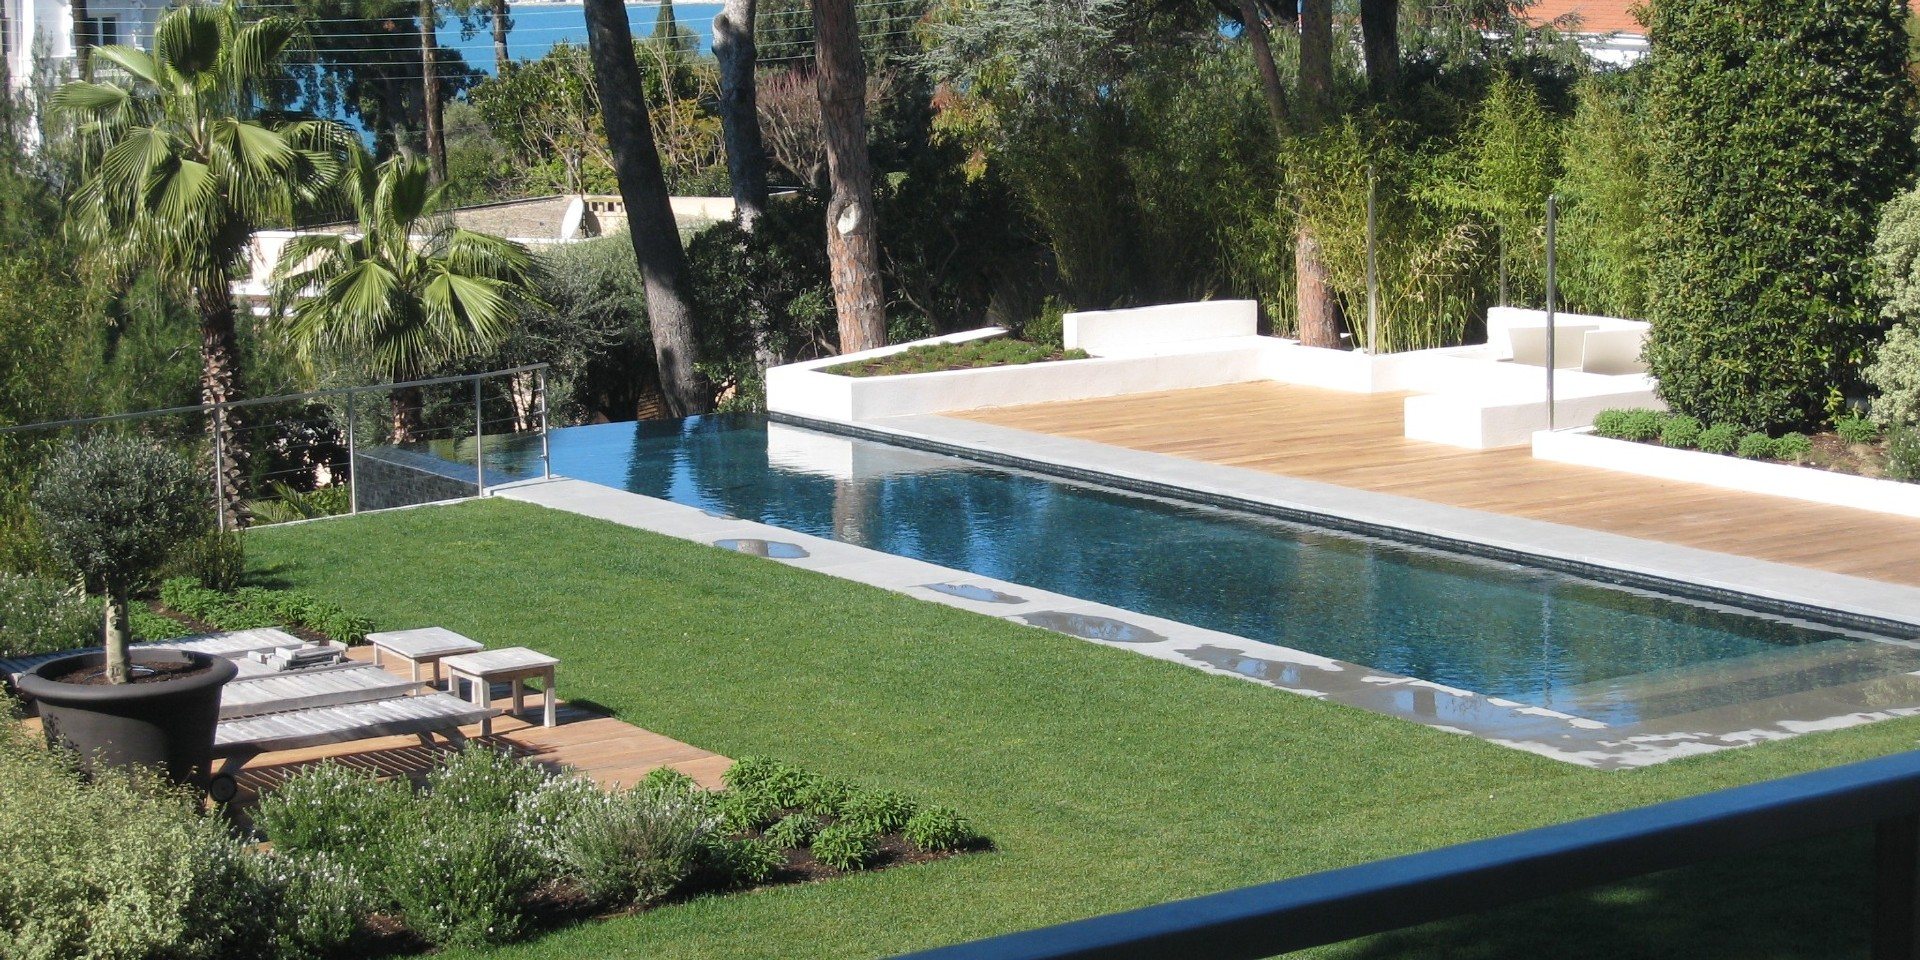 Hortus cecile chaltin architecte paysagiste 06 antibes for Architecte jardin